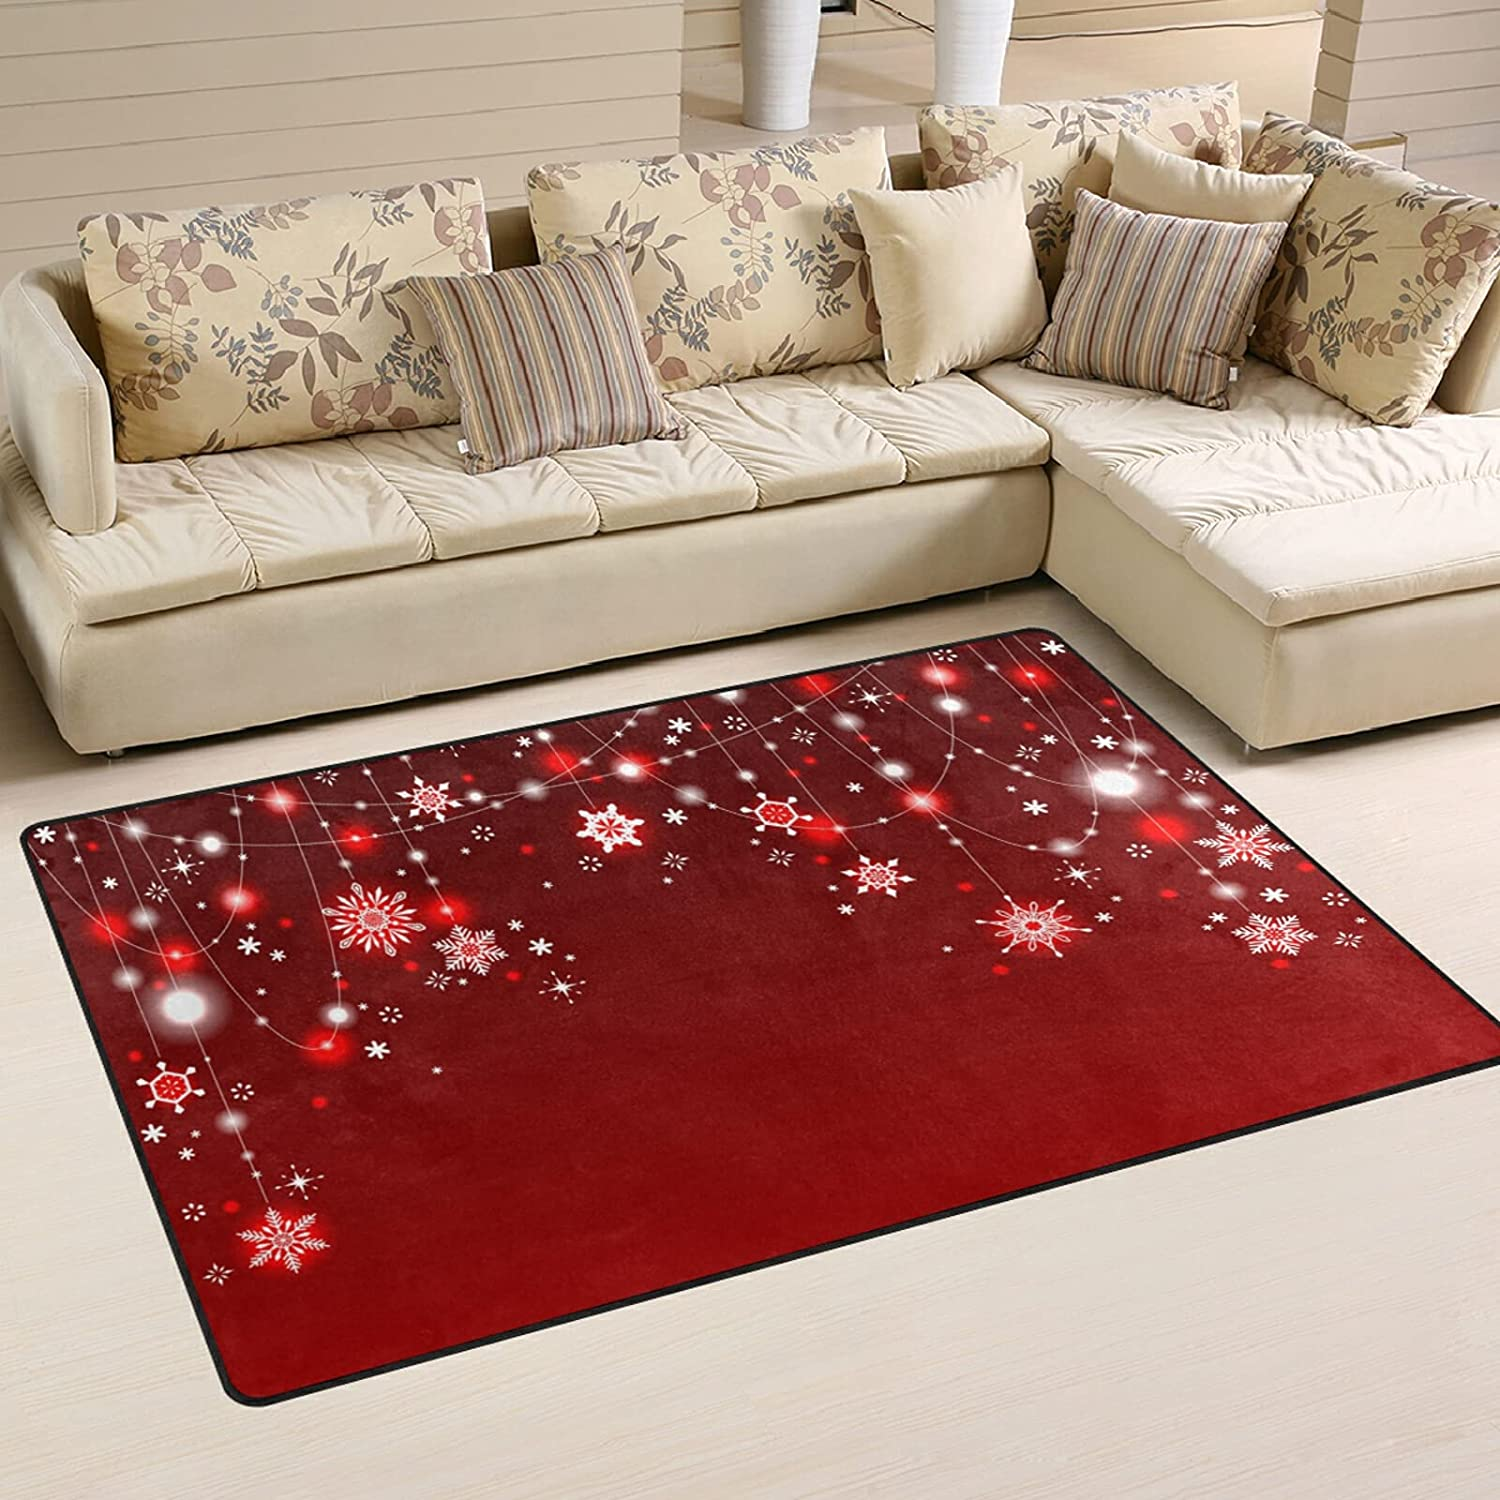 Christmas Max 59% OFF Hanging Snowflake Large Soft Area Ranking TOP8 Playmat Nursery Rugs